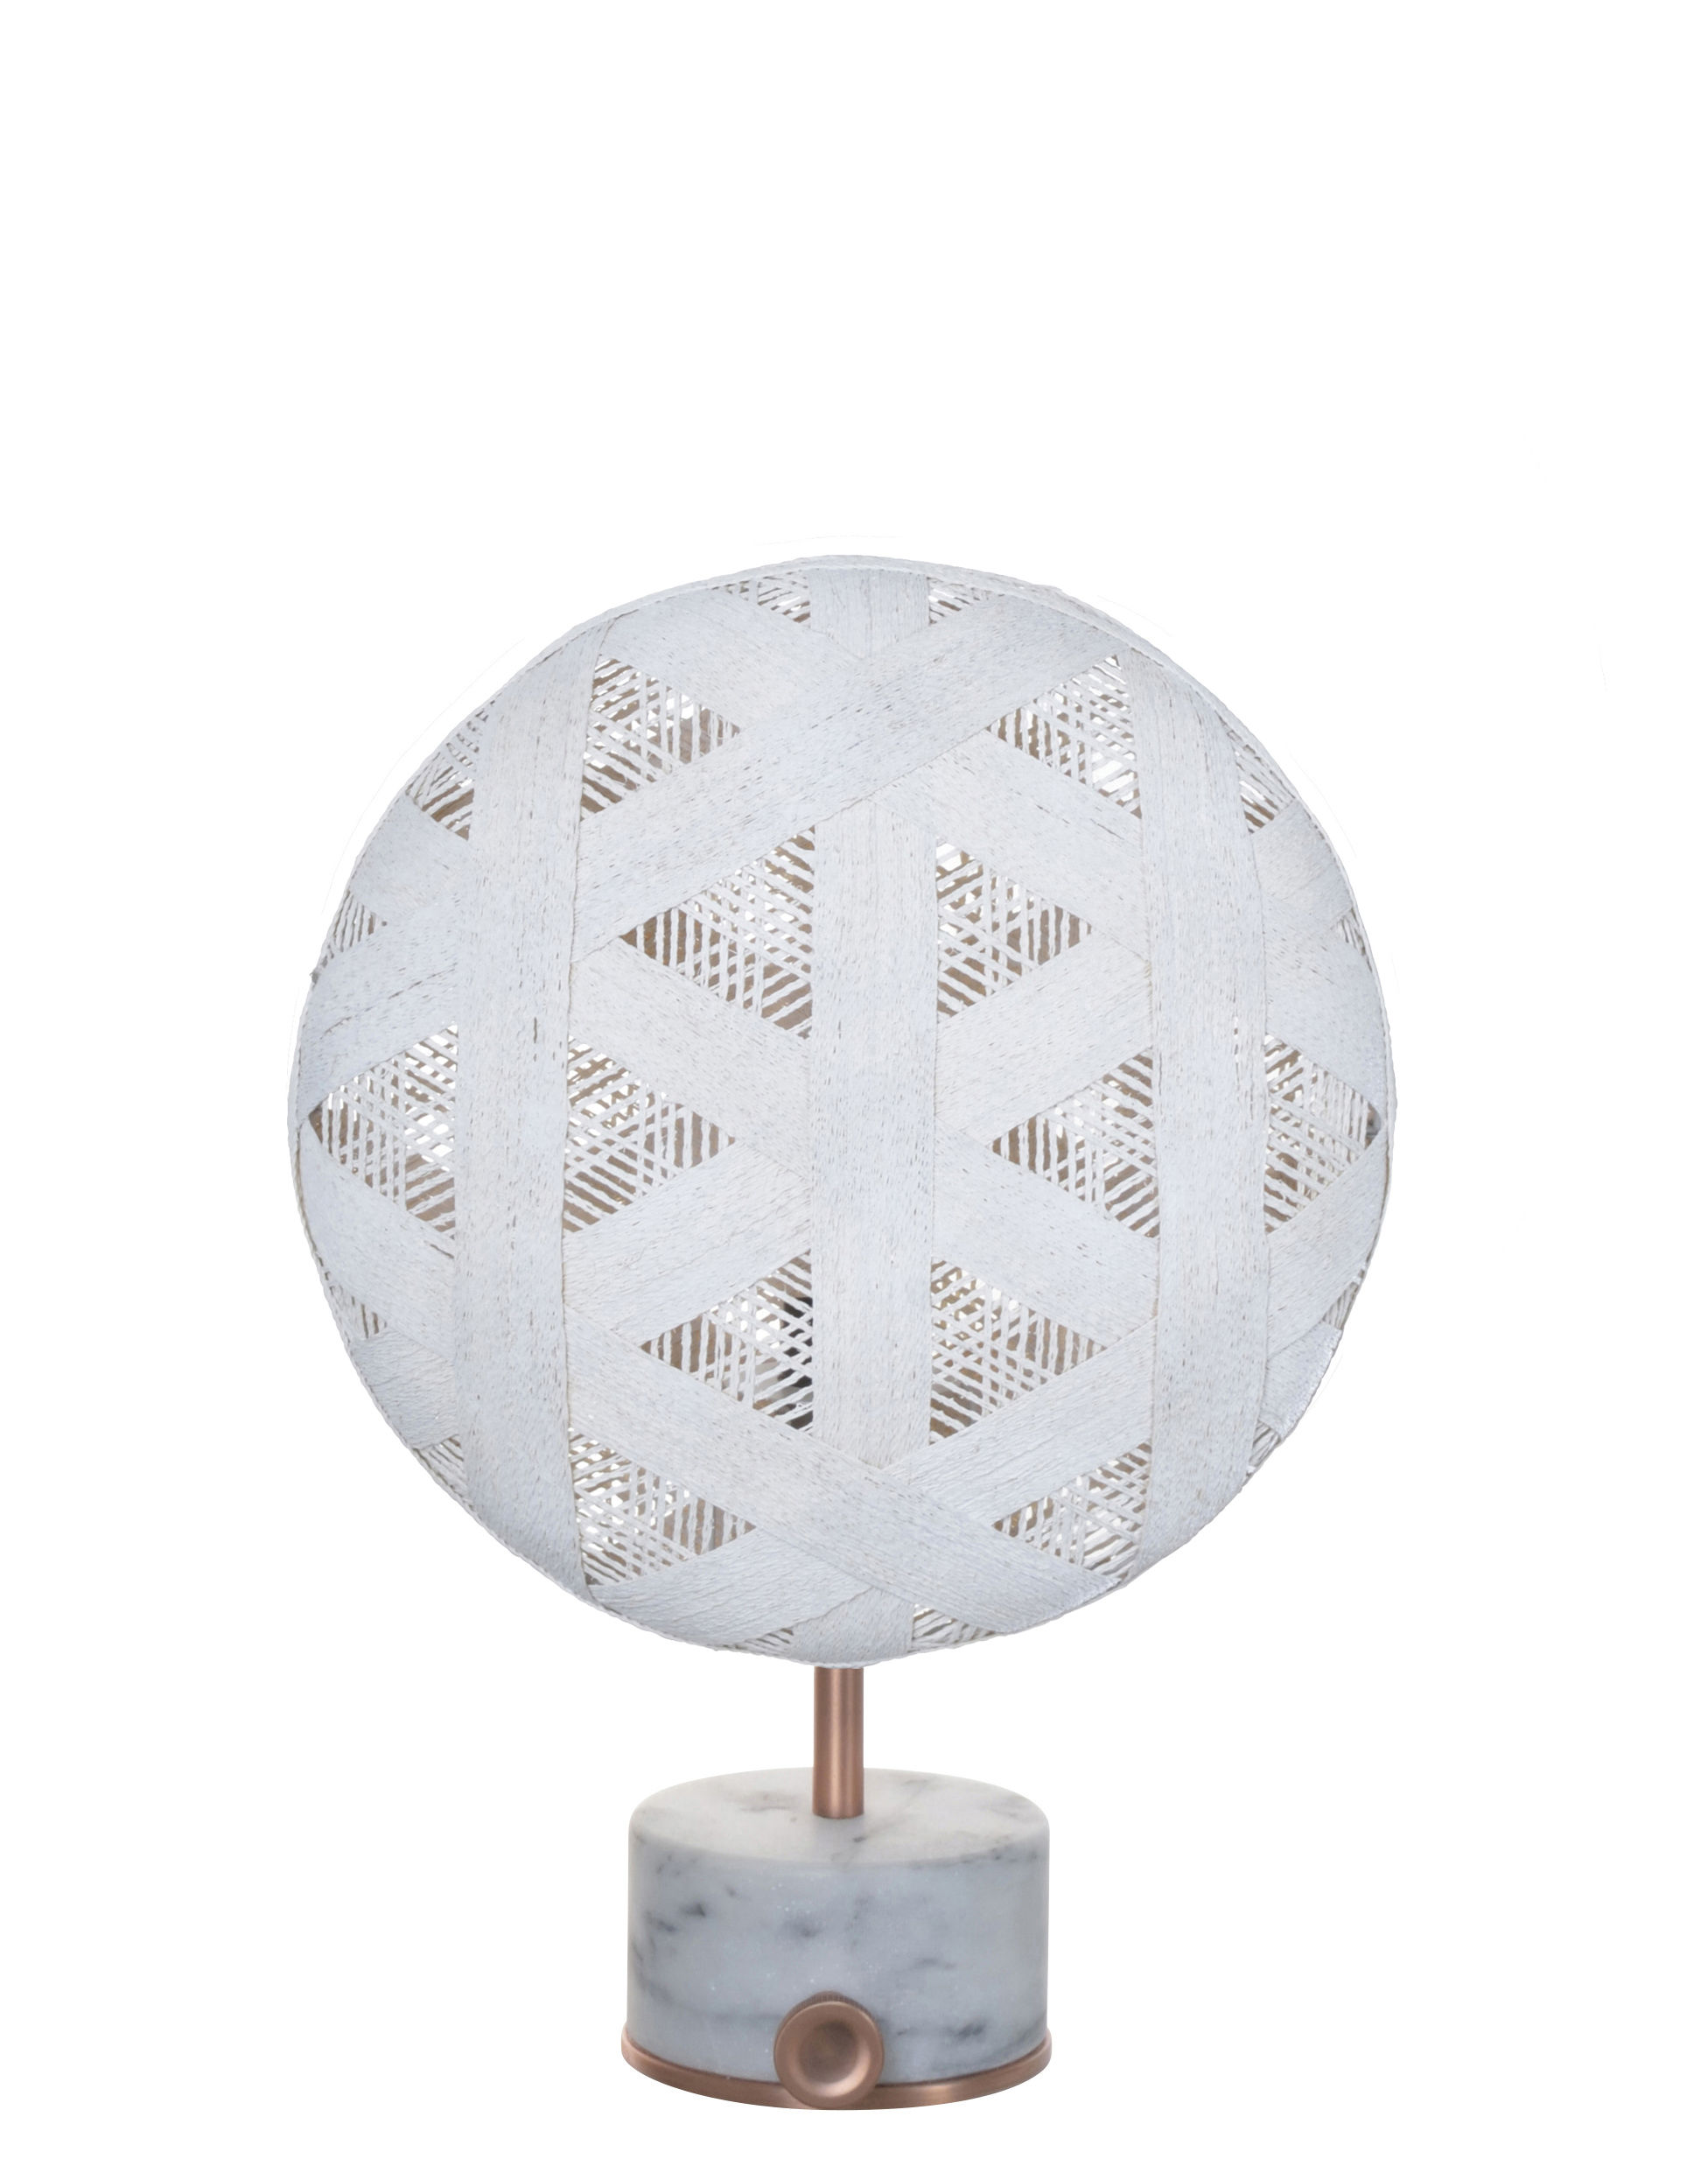 Lighting - Table Lamps - Chanpen Hexagon Table lamp - Ø 26 cm - Triangle patterns by Forestier - White / Copper - Marble, Metal, Woven acaba